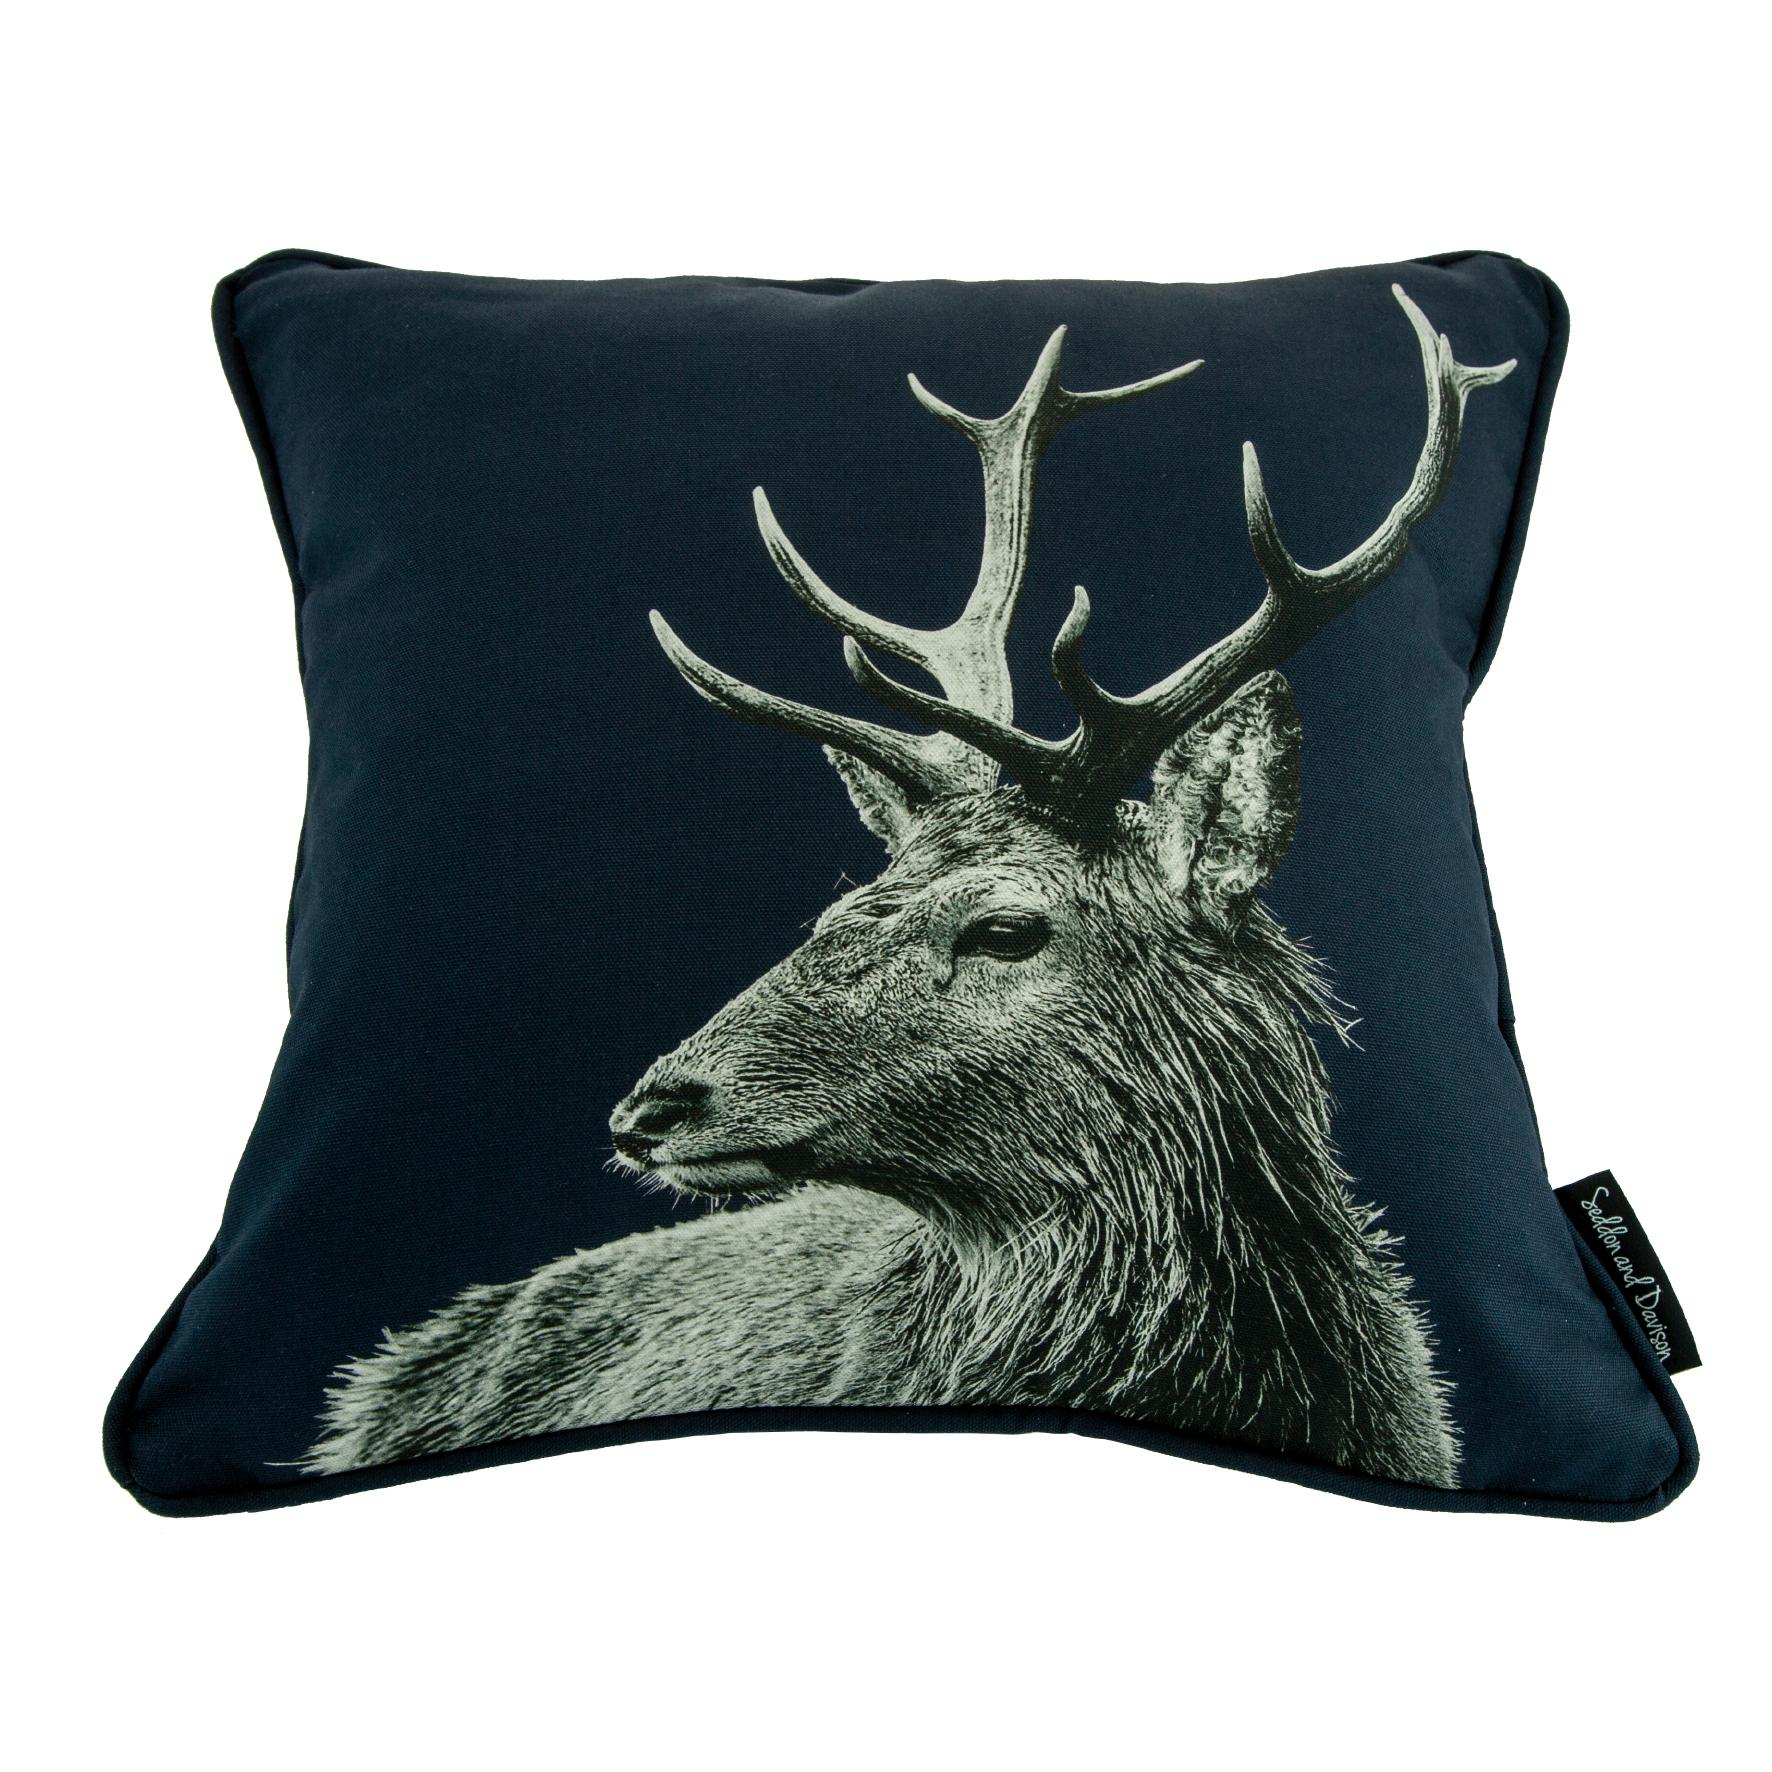 Highland Stag Cushion on Blackberry